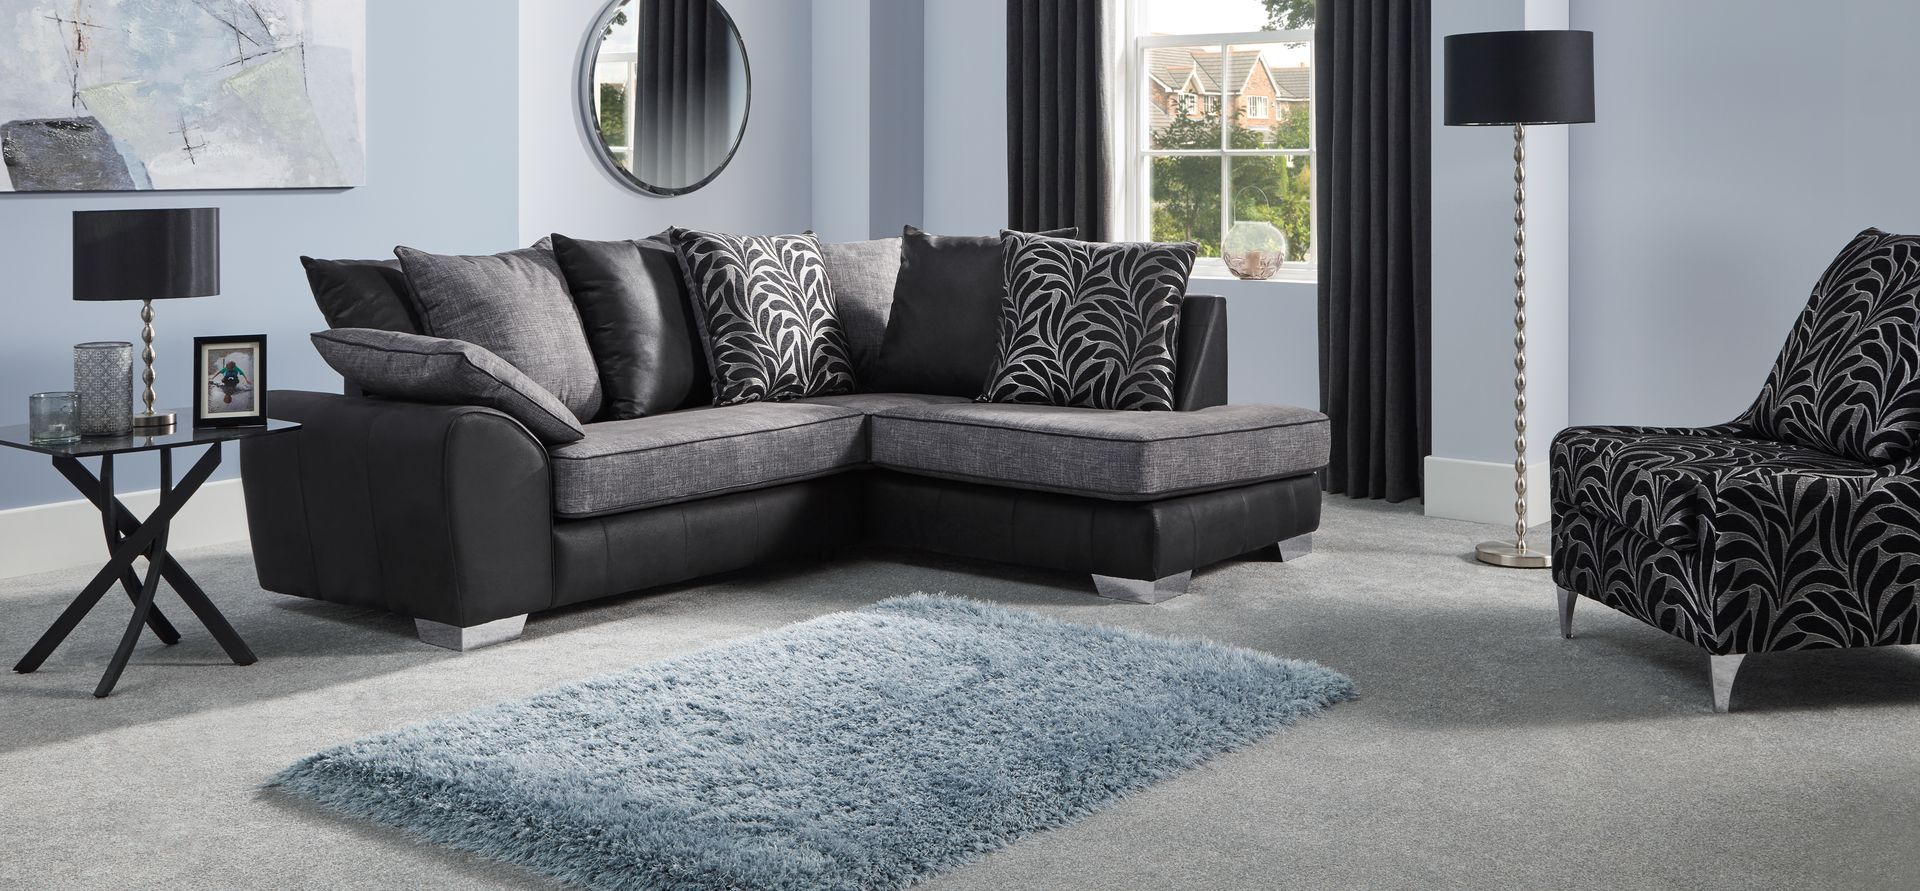 Lydia 2 Corner 1 Rhf Chaise Scatter Back Scs Corner Couch Chaise New Homes